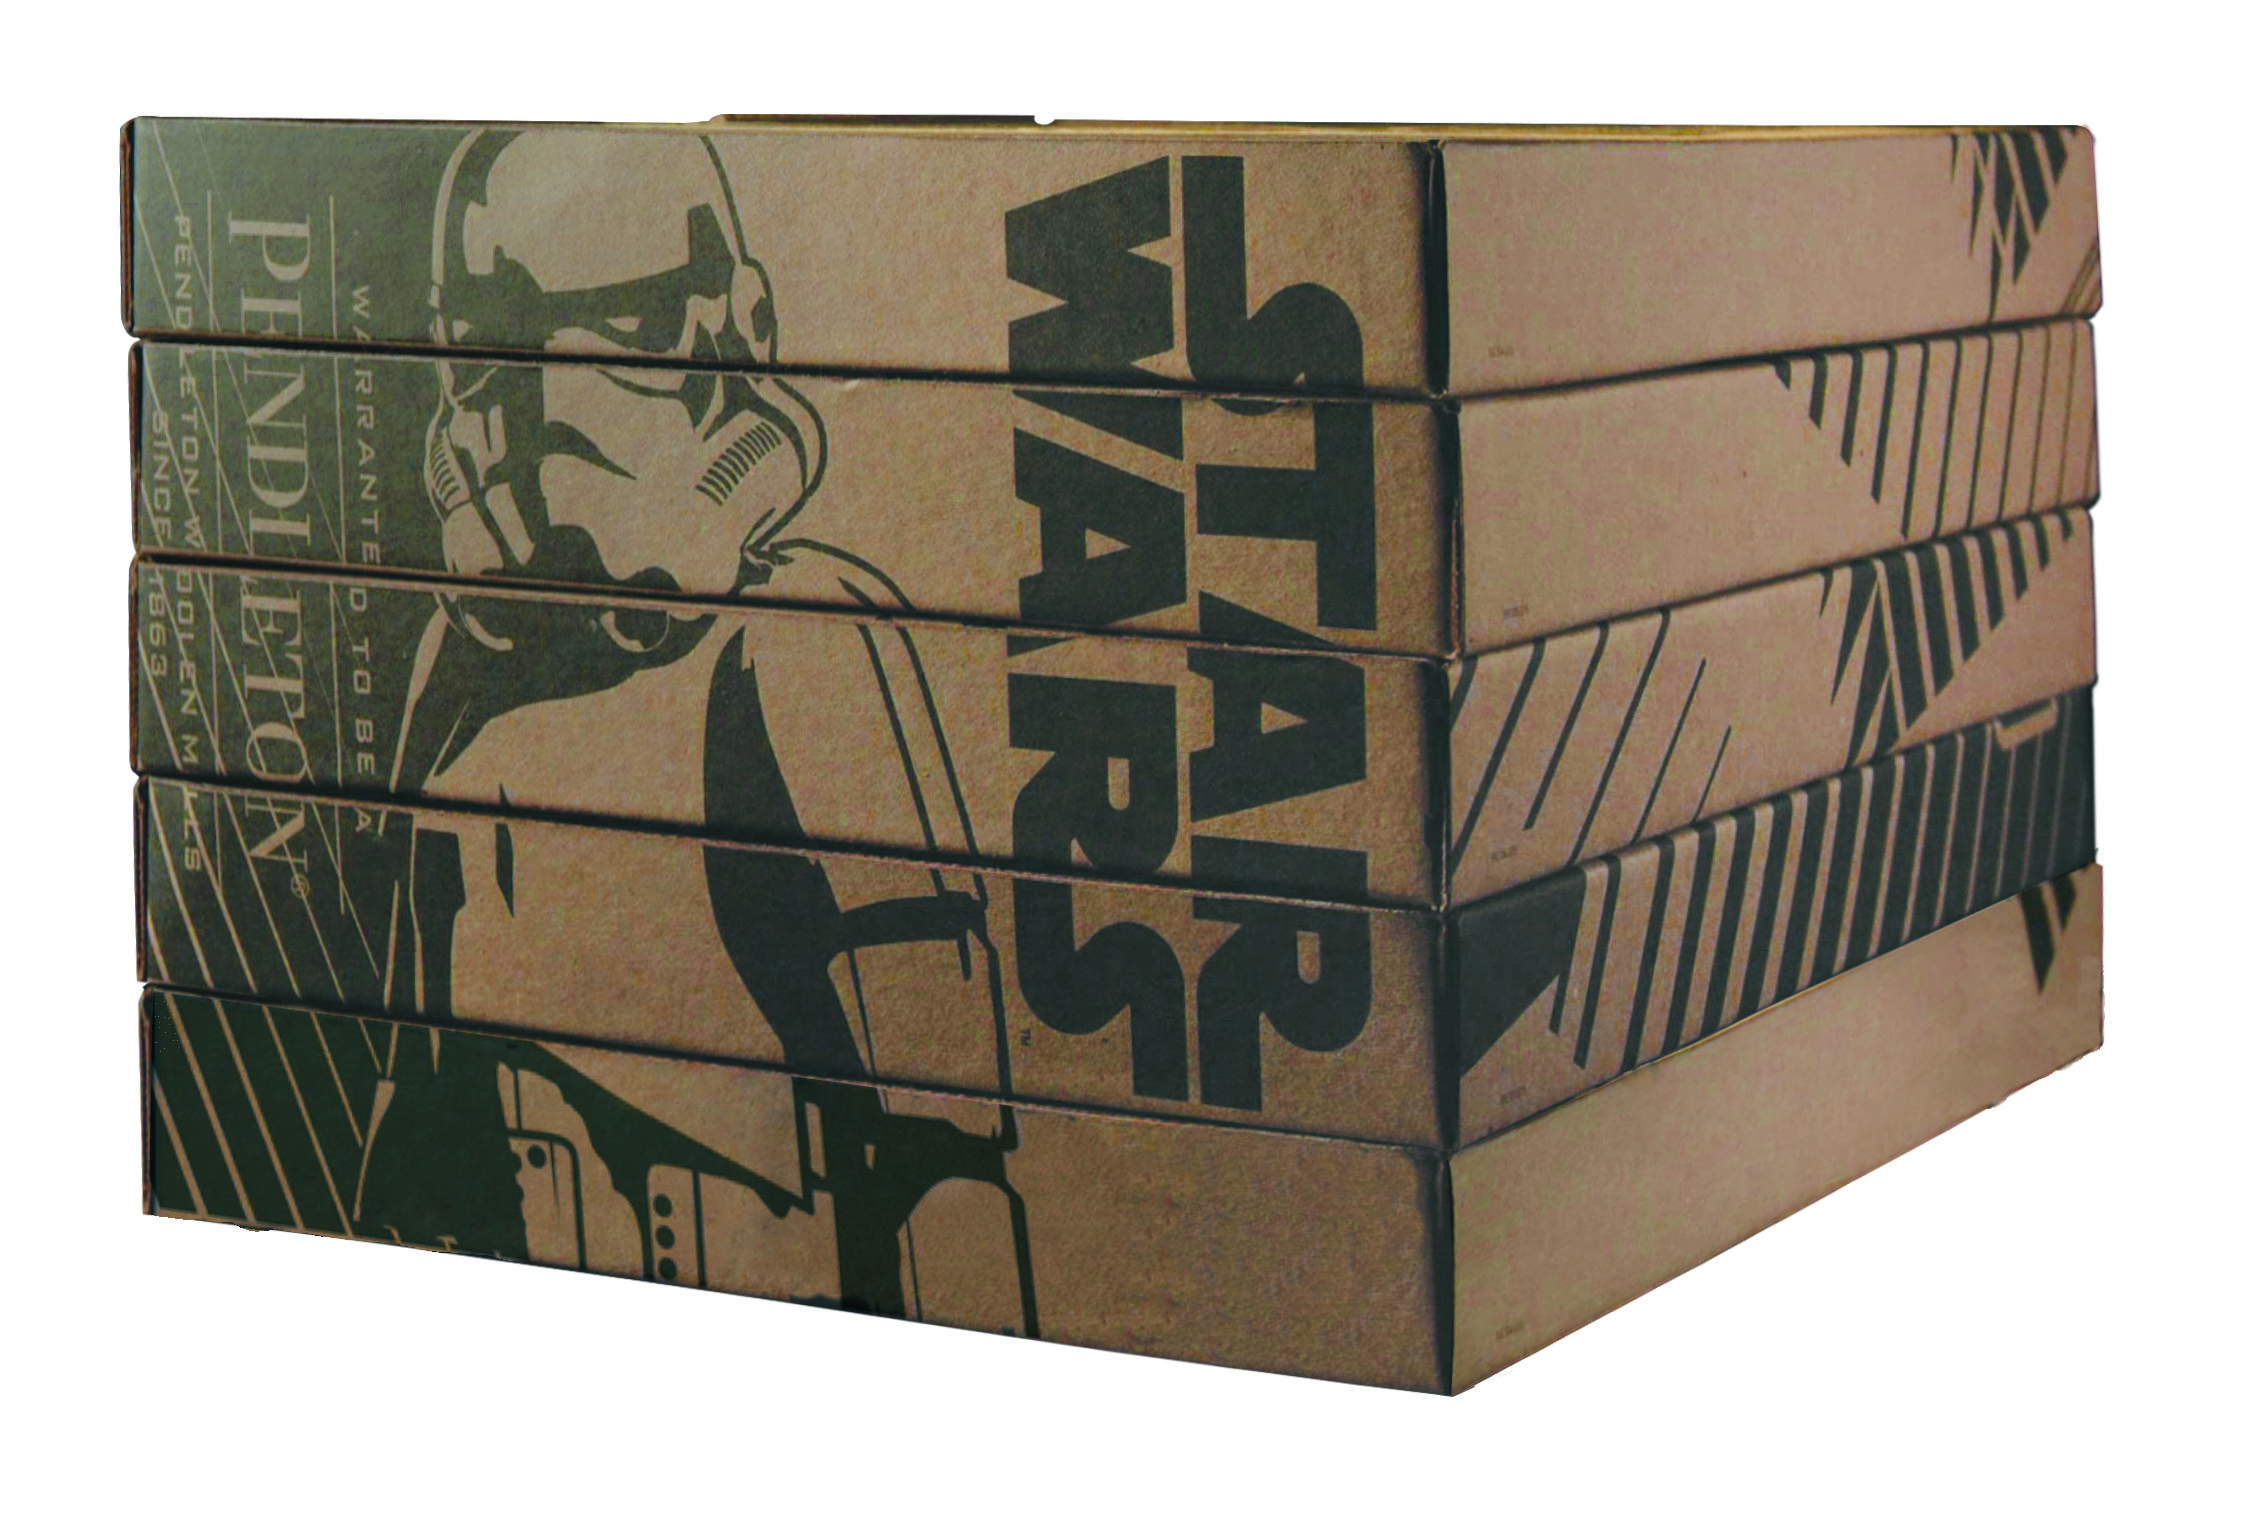 Special stacking boxes for Star Wars blankets